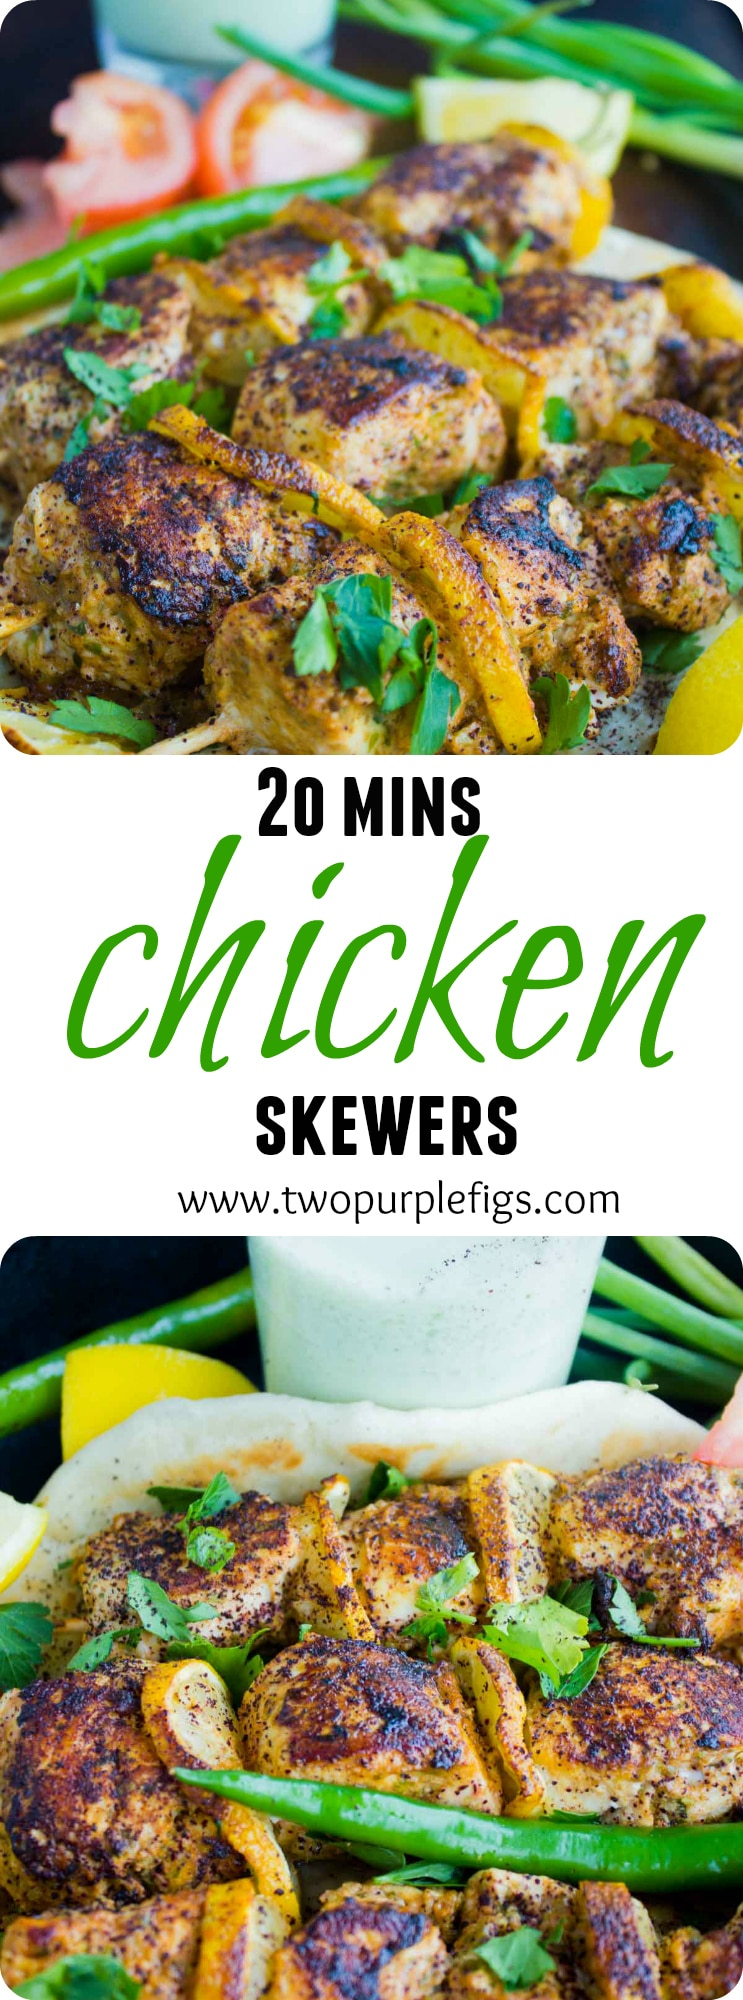 Turkish Grilled Chicken Skewers| These Grilled Chicken Skewers marinated in a Turkish spice mix and yogurt are every bit as juicy and flavorful as they look. Serve these easy skewers with a glass of my homemade Turkish Ayran for the ultimate low carb healthy chicken dinner! #chicken, #kebap, #turkish, #easy, #bbq, #grilled, #summer,